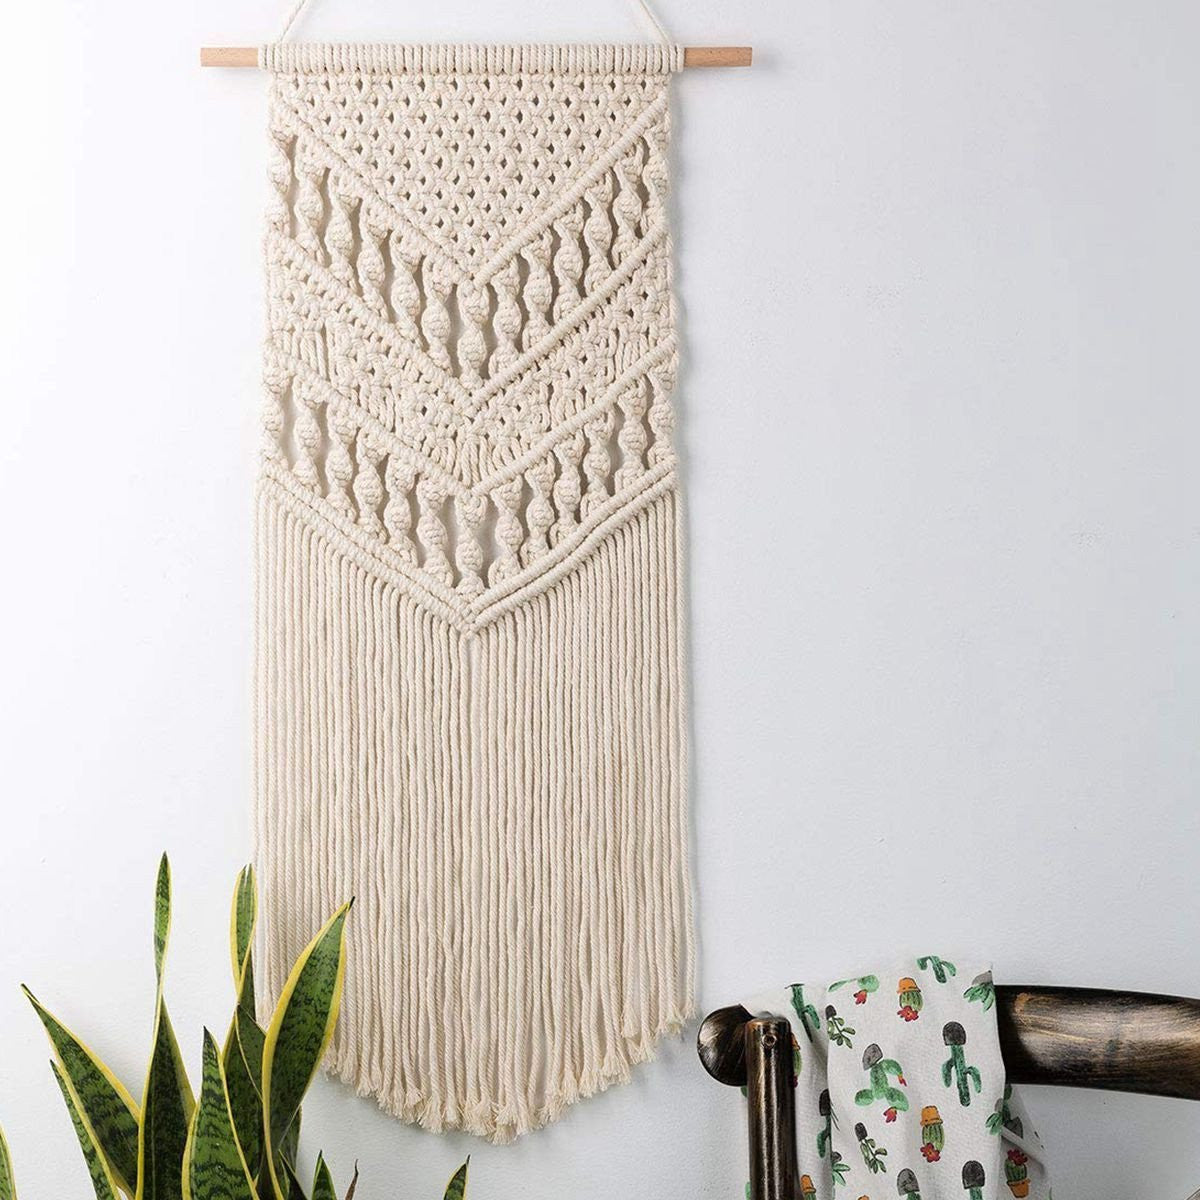 Boho Chic by Ingrid Tapestery/Macrame Tapestry